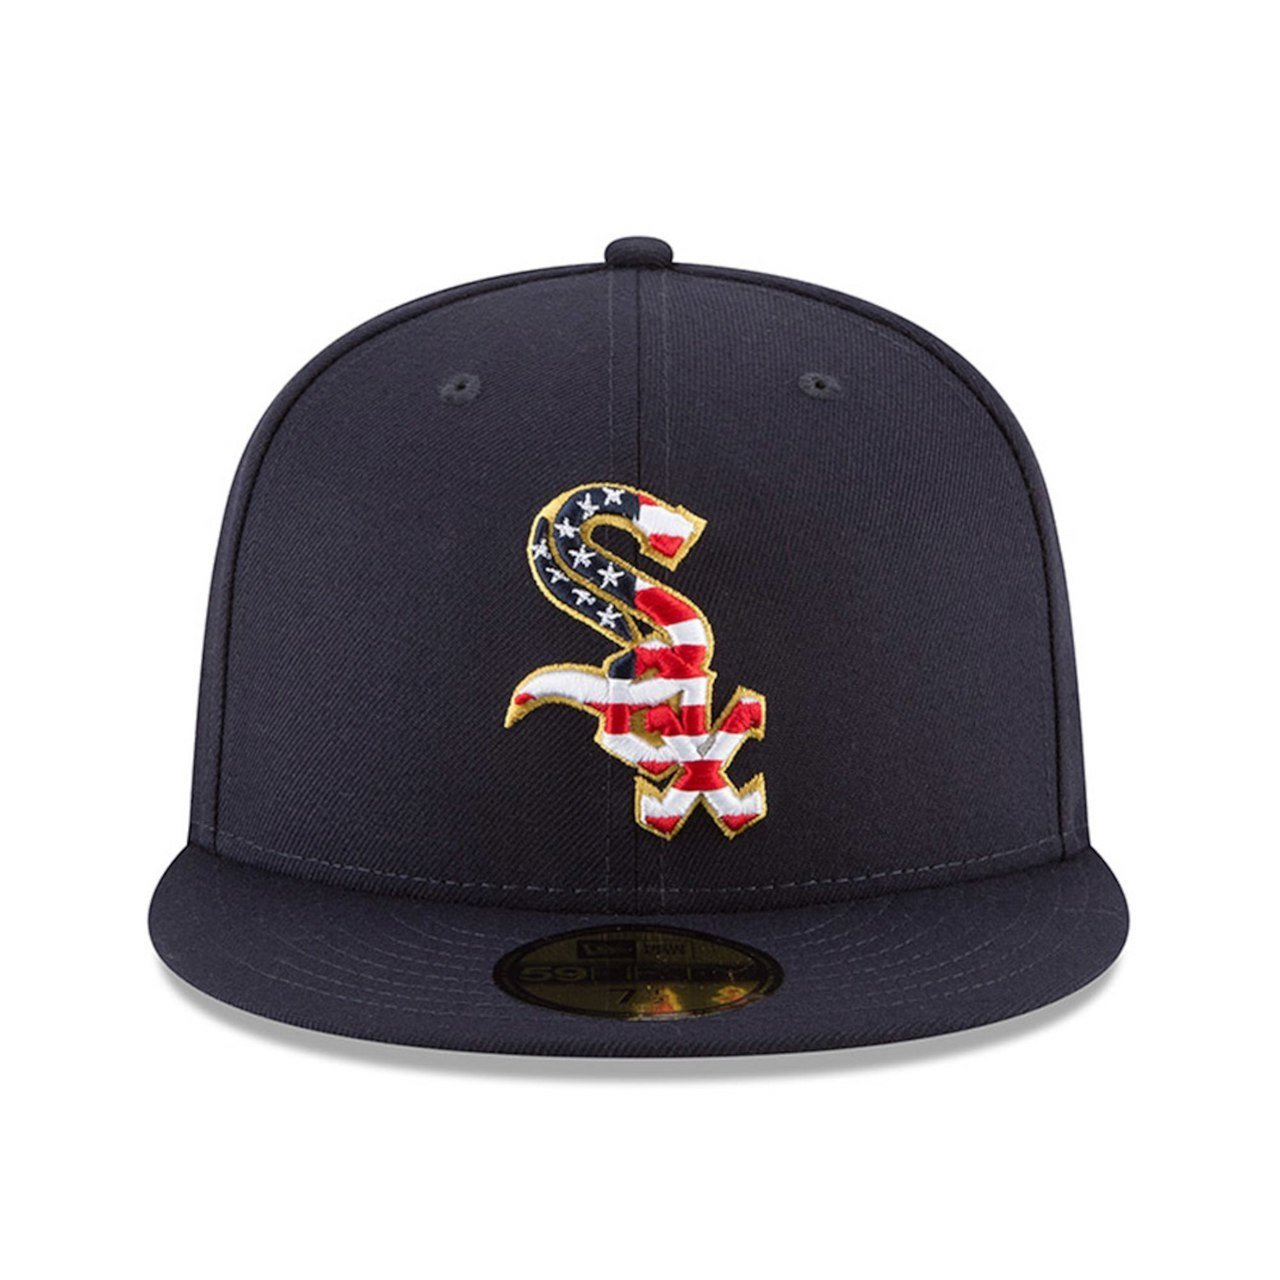 0de7dbffd7e1fa Amazon.com: New Era Chicago White Sox Navy 4TH of July Cap 59fifty 5950  Fitted MLB Limited Edition: Clothing